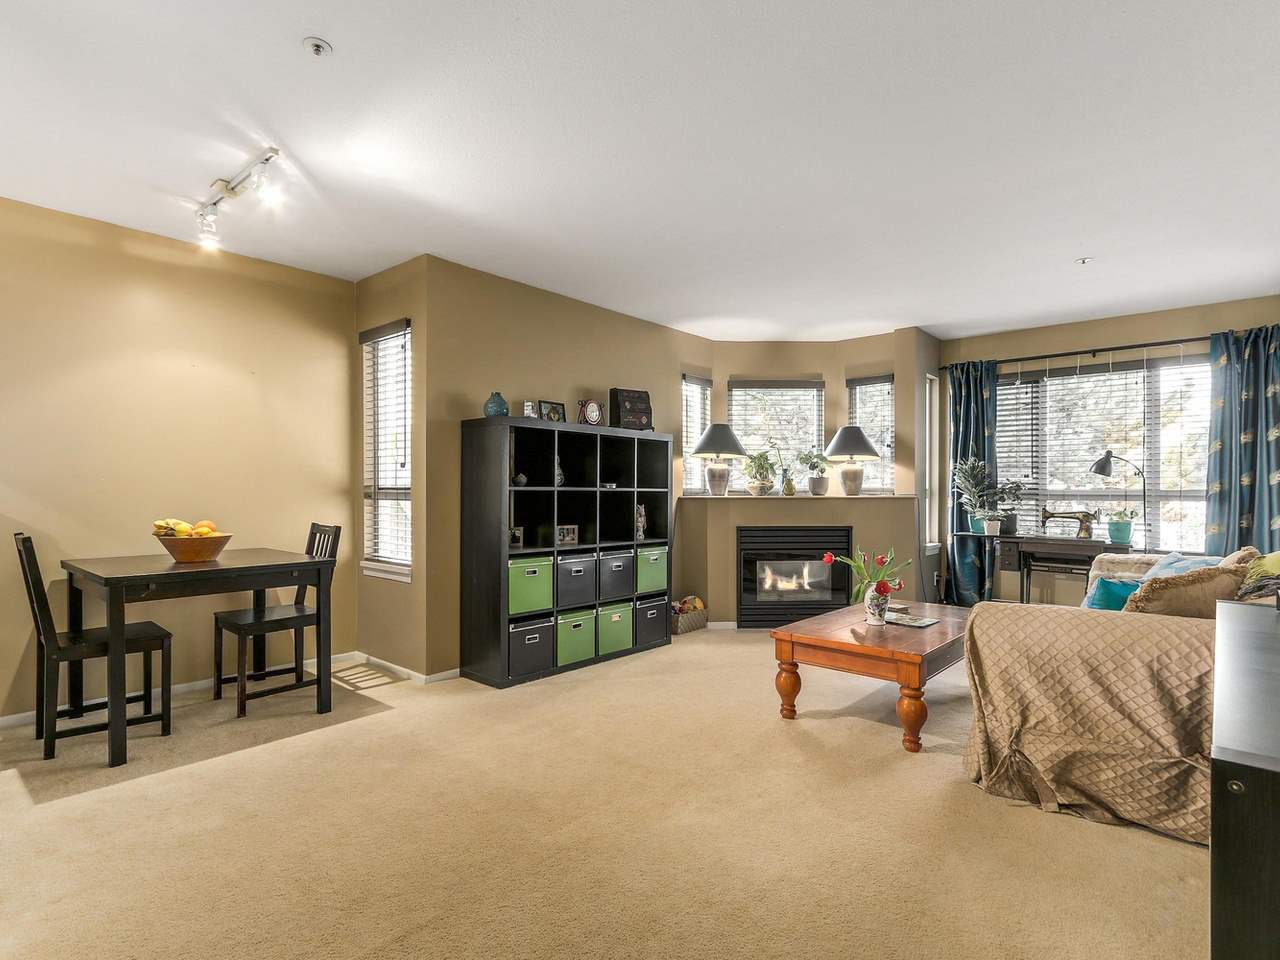 """Photo 2: Photos: 301 1623 E 2ND Avenue in Vancouver: Grandview VE Condo for sale in """"GRANDVIEW MANOR"""" (Vancouver East)  : MLS®# R2122830"""